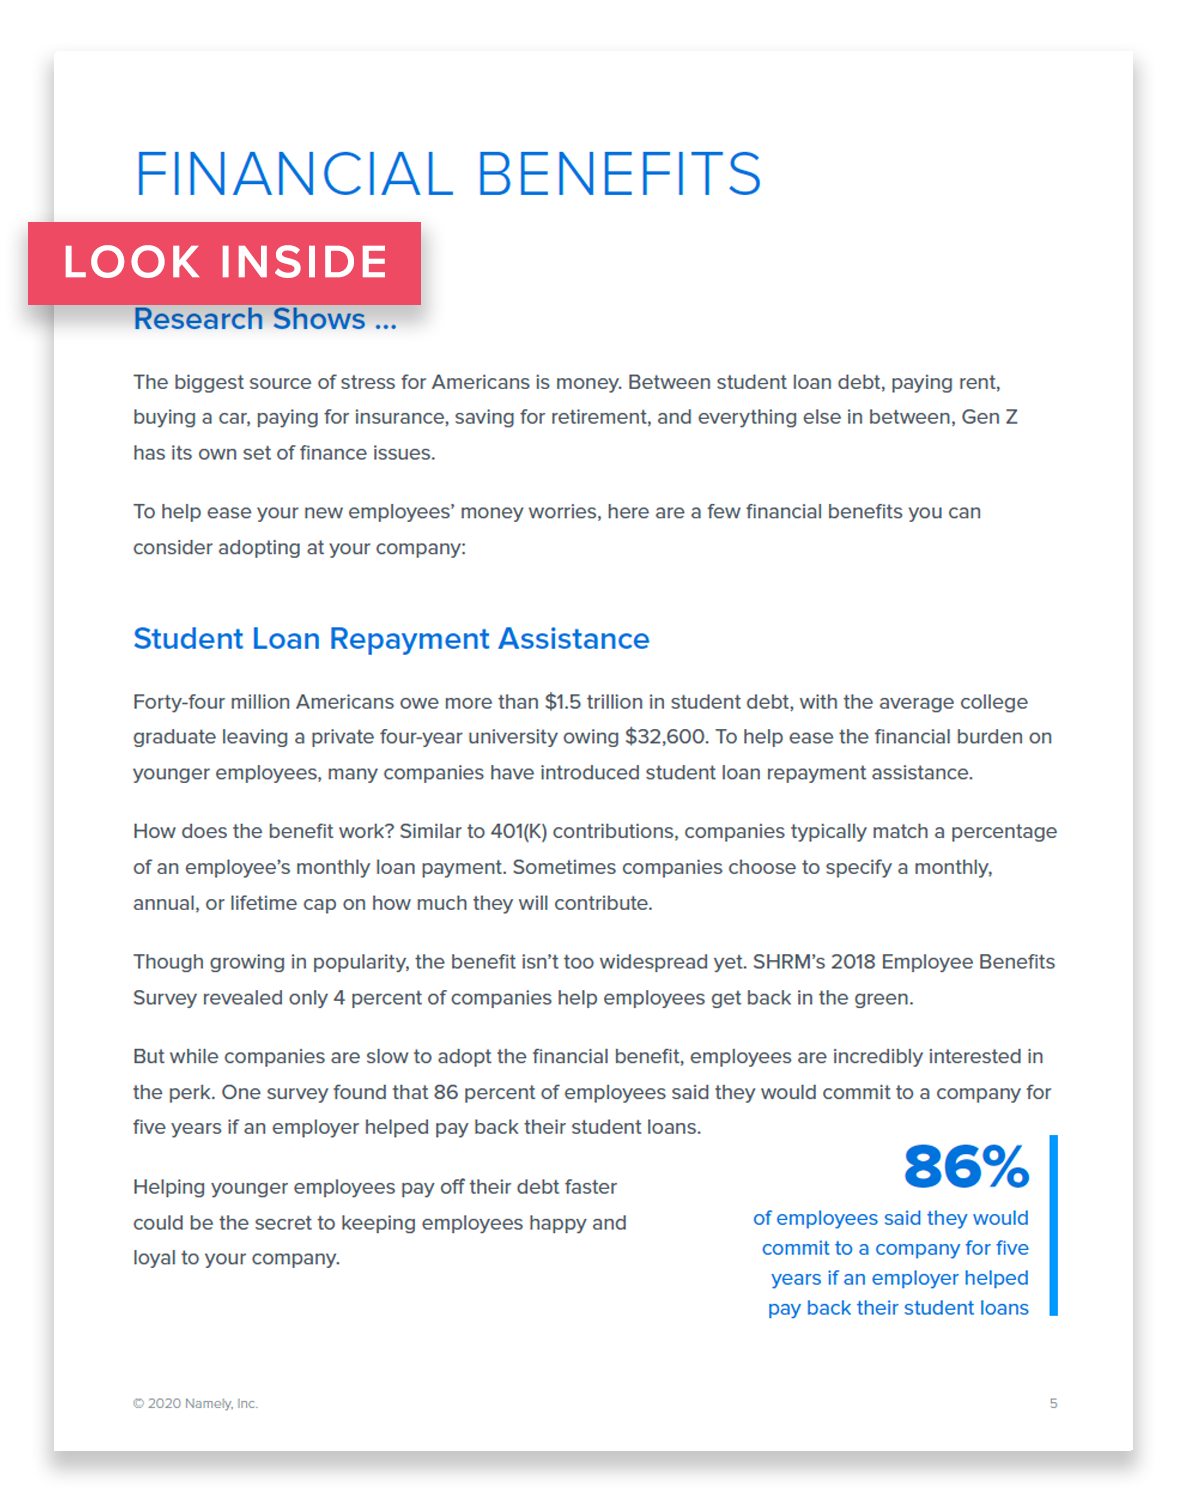 LookInside_NextGenBenefits